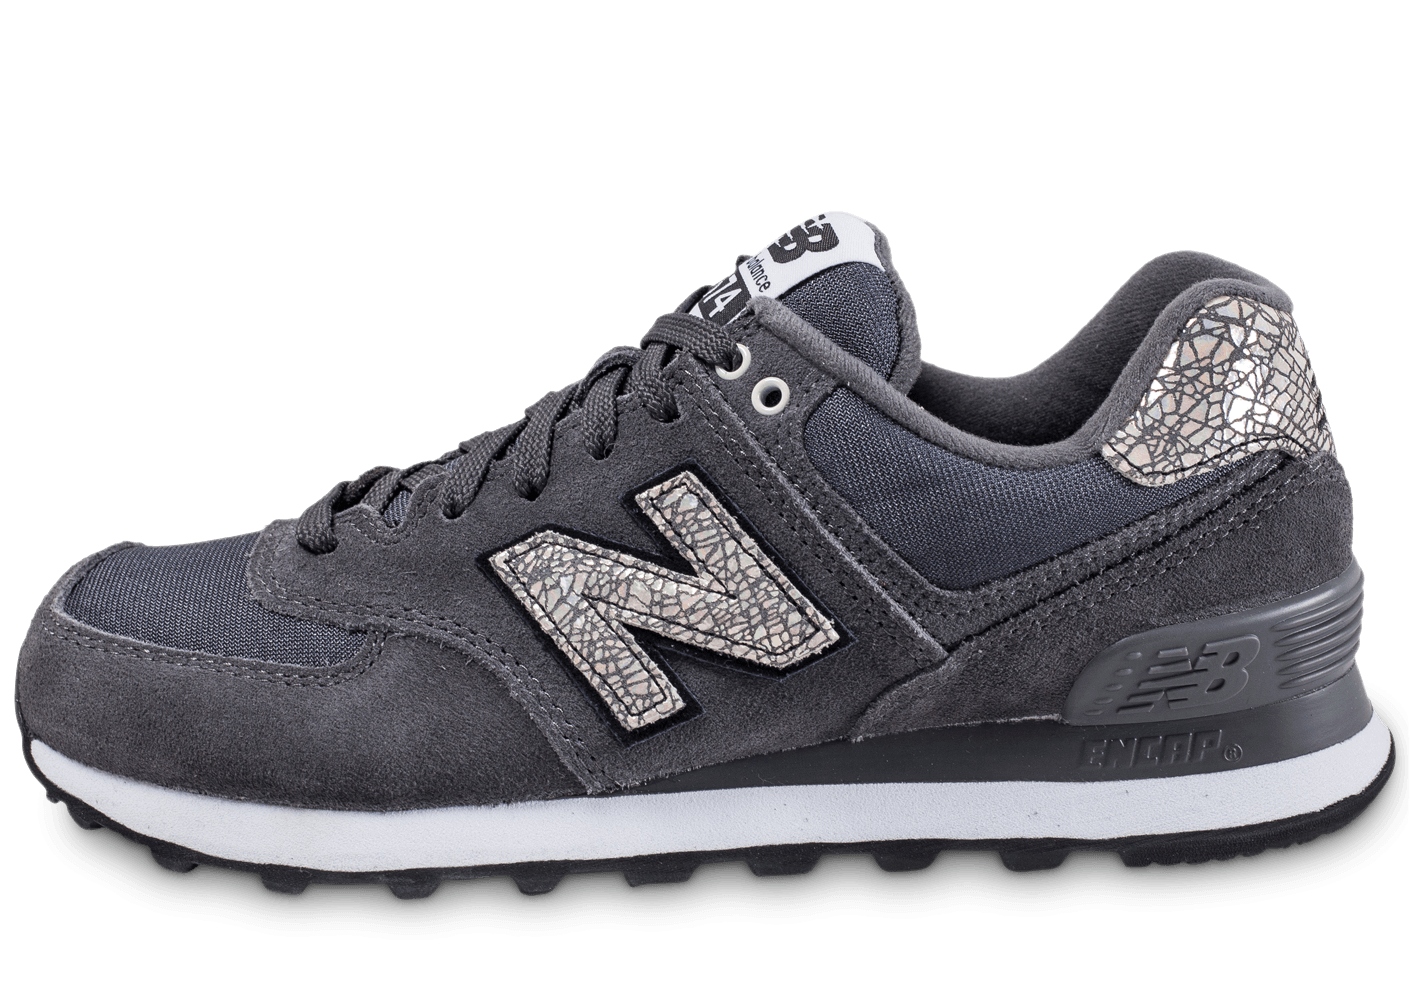 New Balance WL574 CID anthracite - Chaussures Black Friday - Chausport